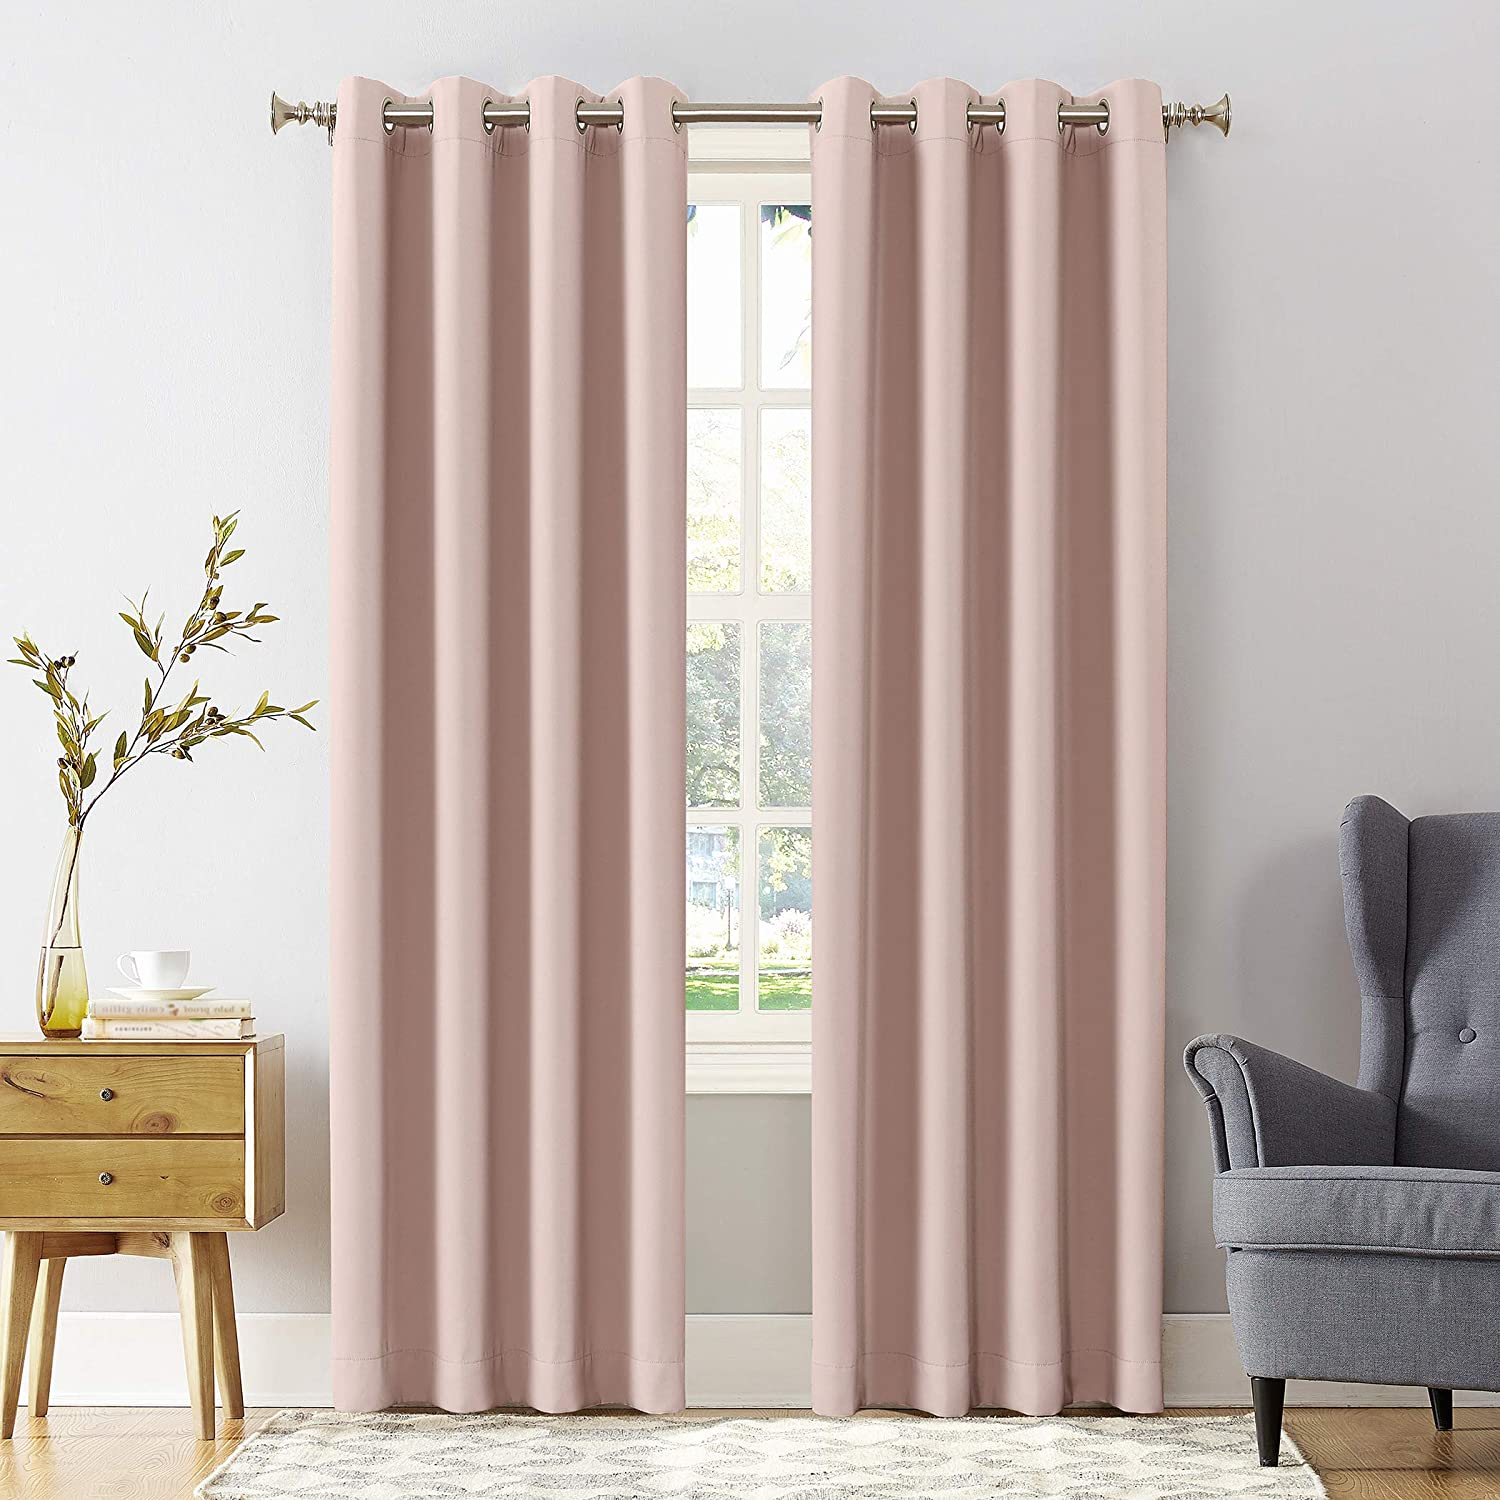 "Sun Zero Easton Blackout Energy Efficient Grommet Curtain Panel, 54"" x 63"", Blush Pink"